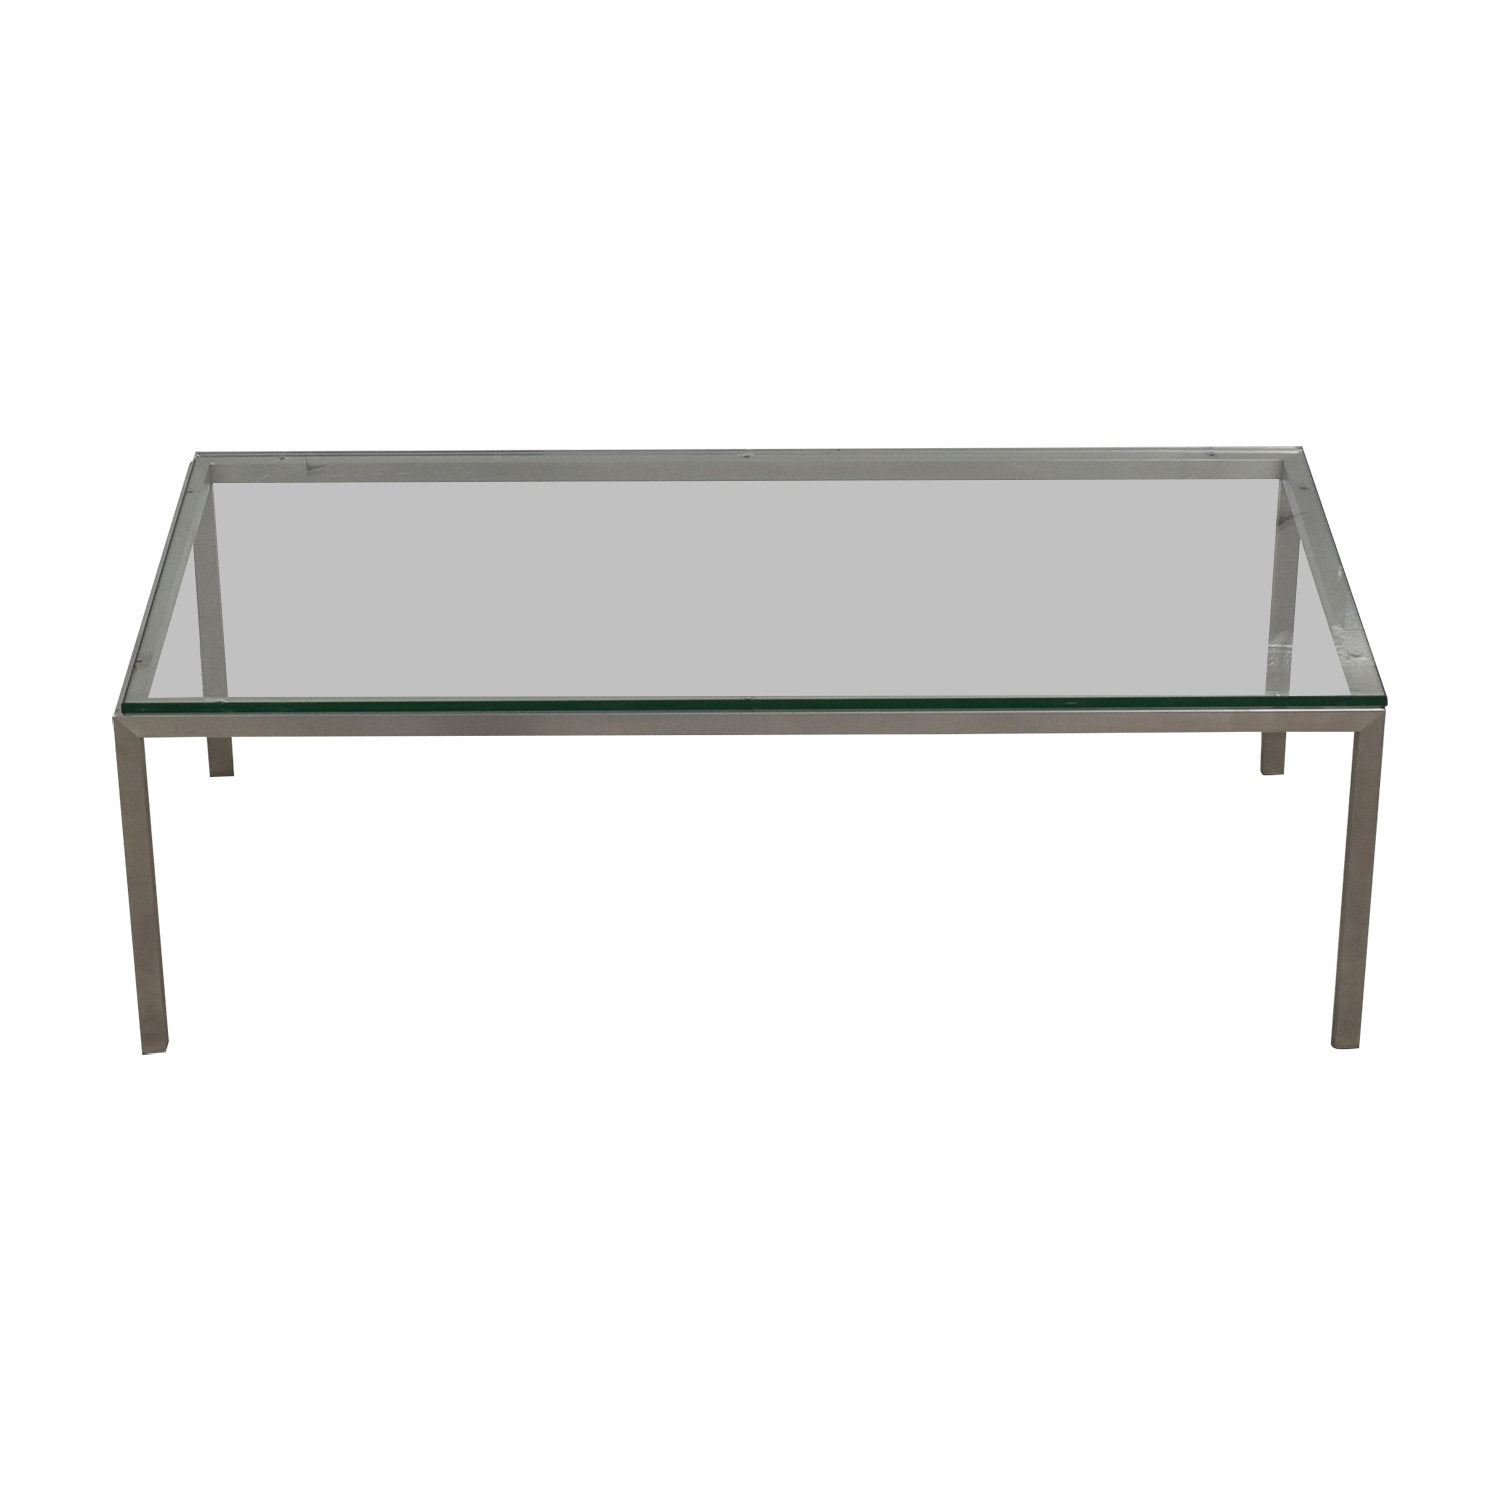 Room and Board Room & Board Portica Glass and Chrome Coffee Table